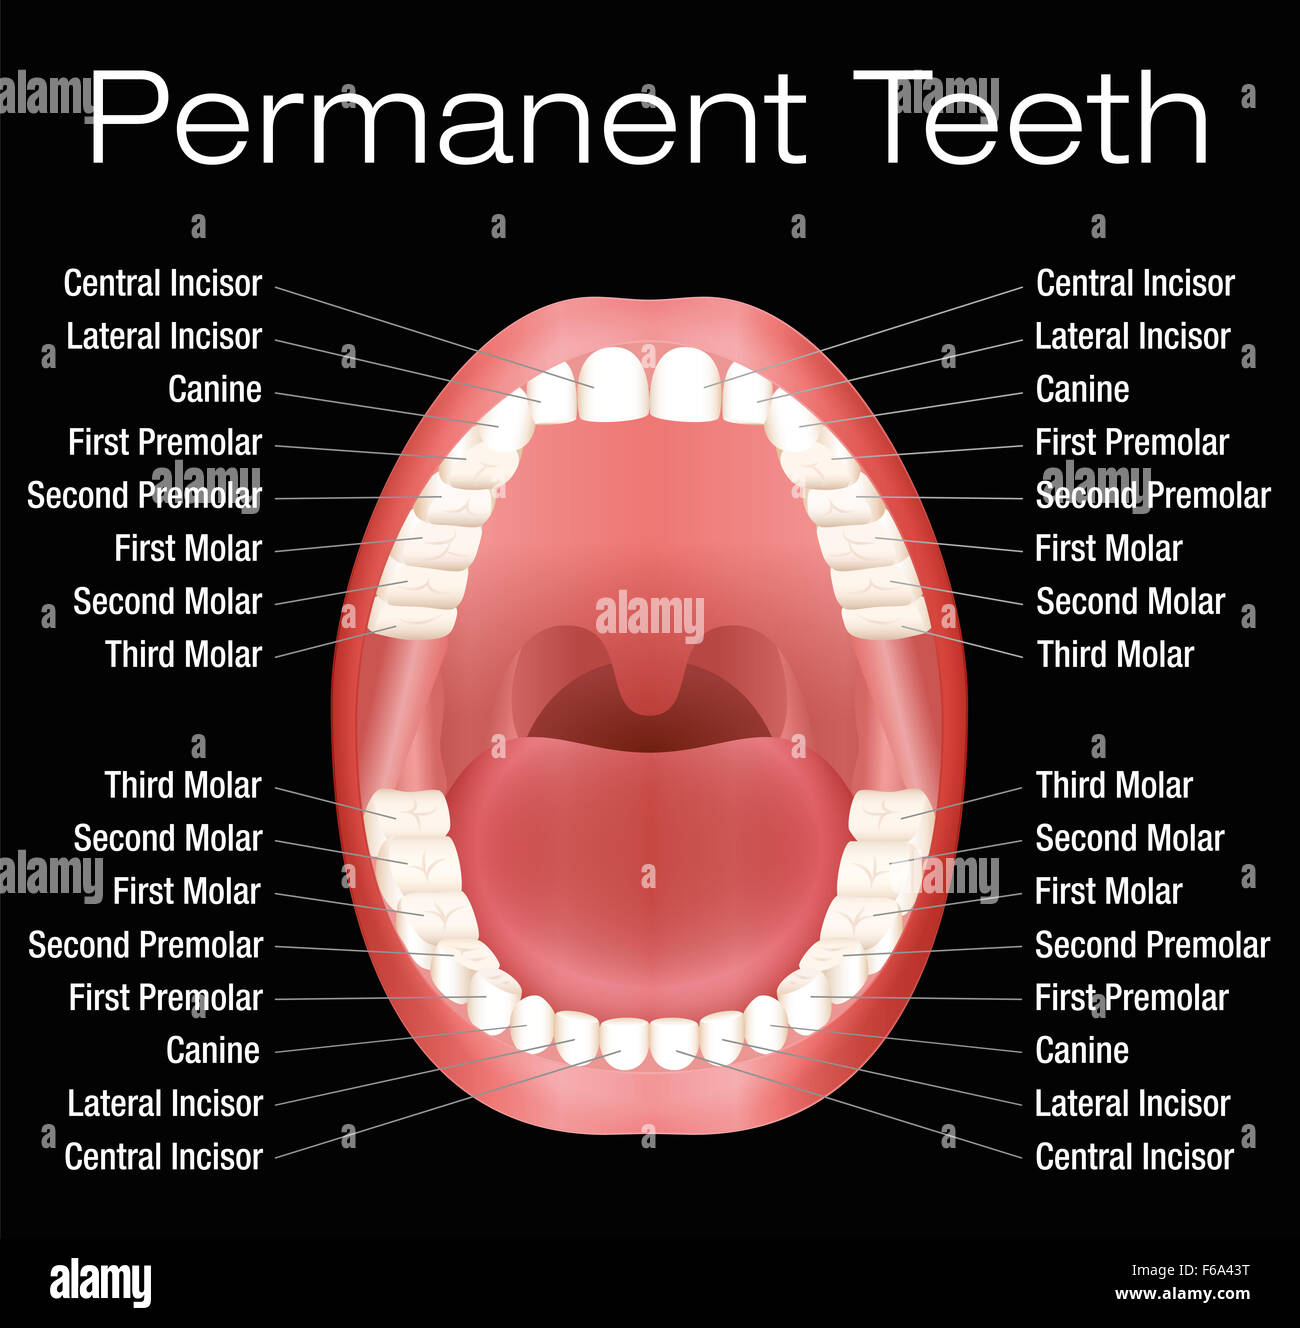 Adult Teeth With Names Illustration On Black Background